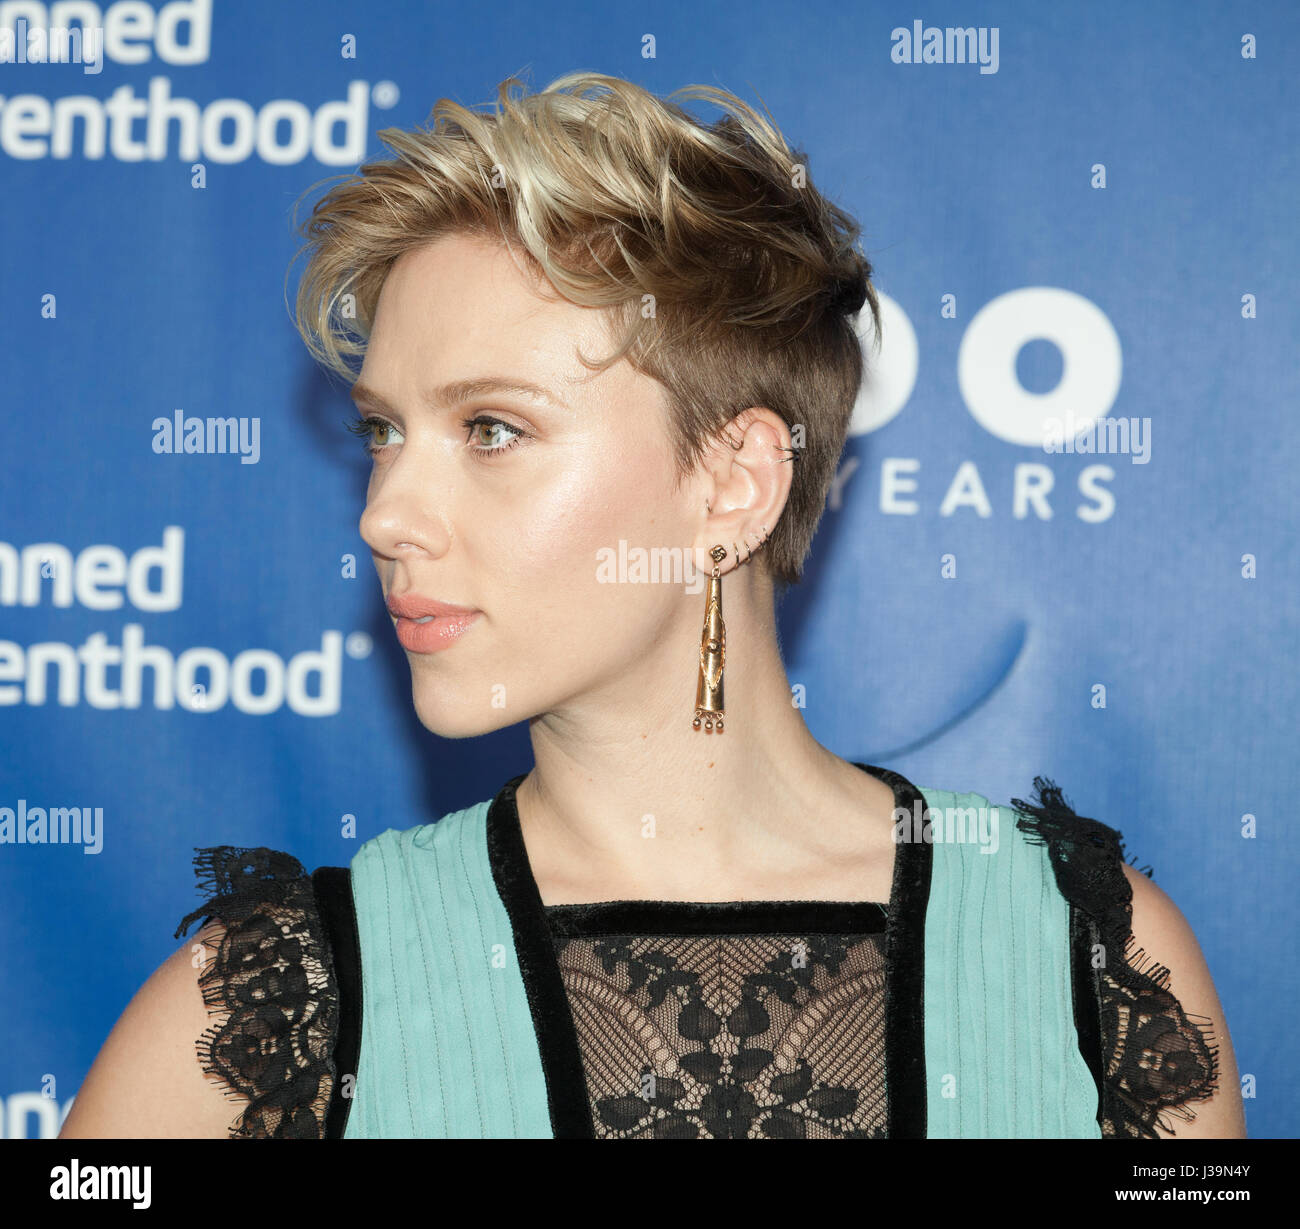 New York, NY USA - May 2, 2017: Scarlett Johansson attends the Planned Parenthood 100th Anniversary Gala at Pier - Stock Image